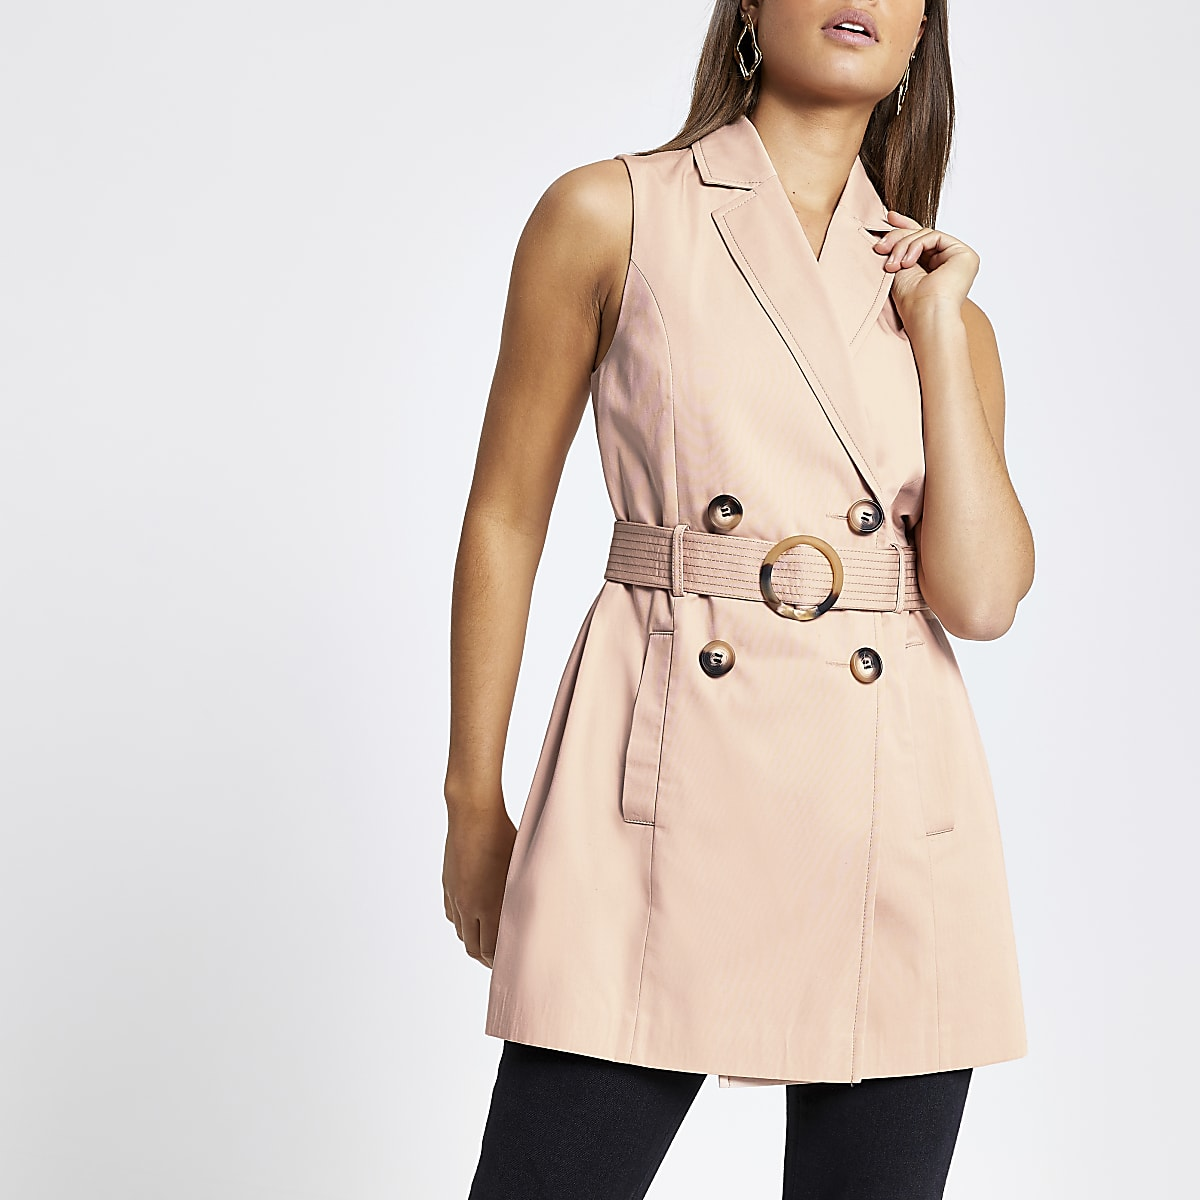 Pink belted sleeveless dress